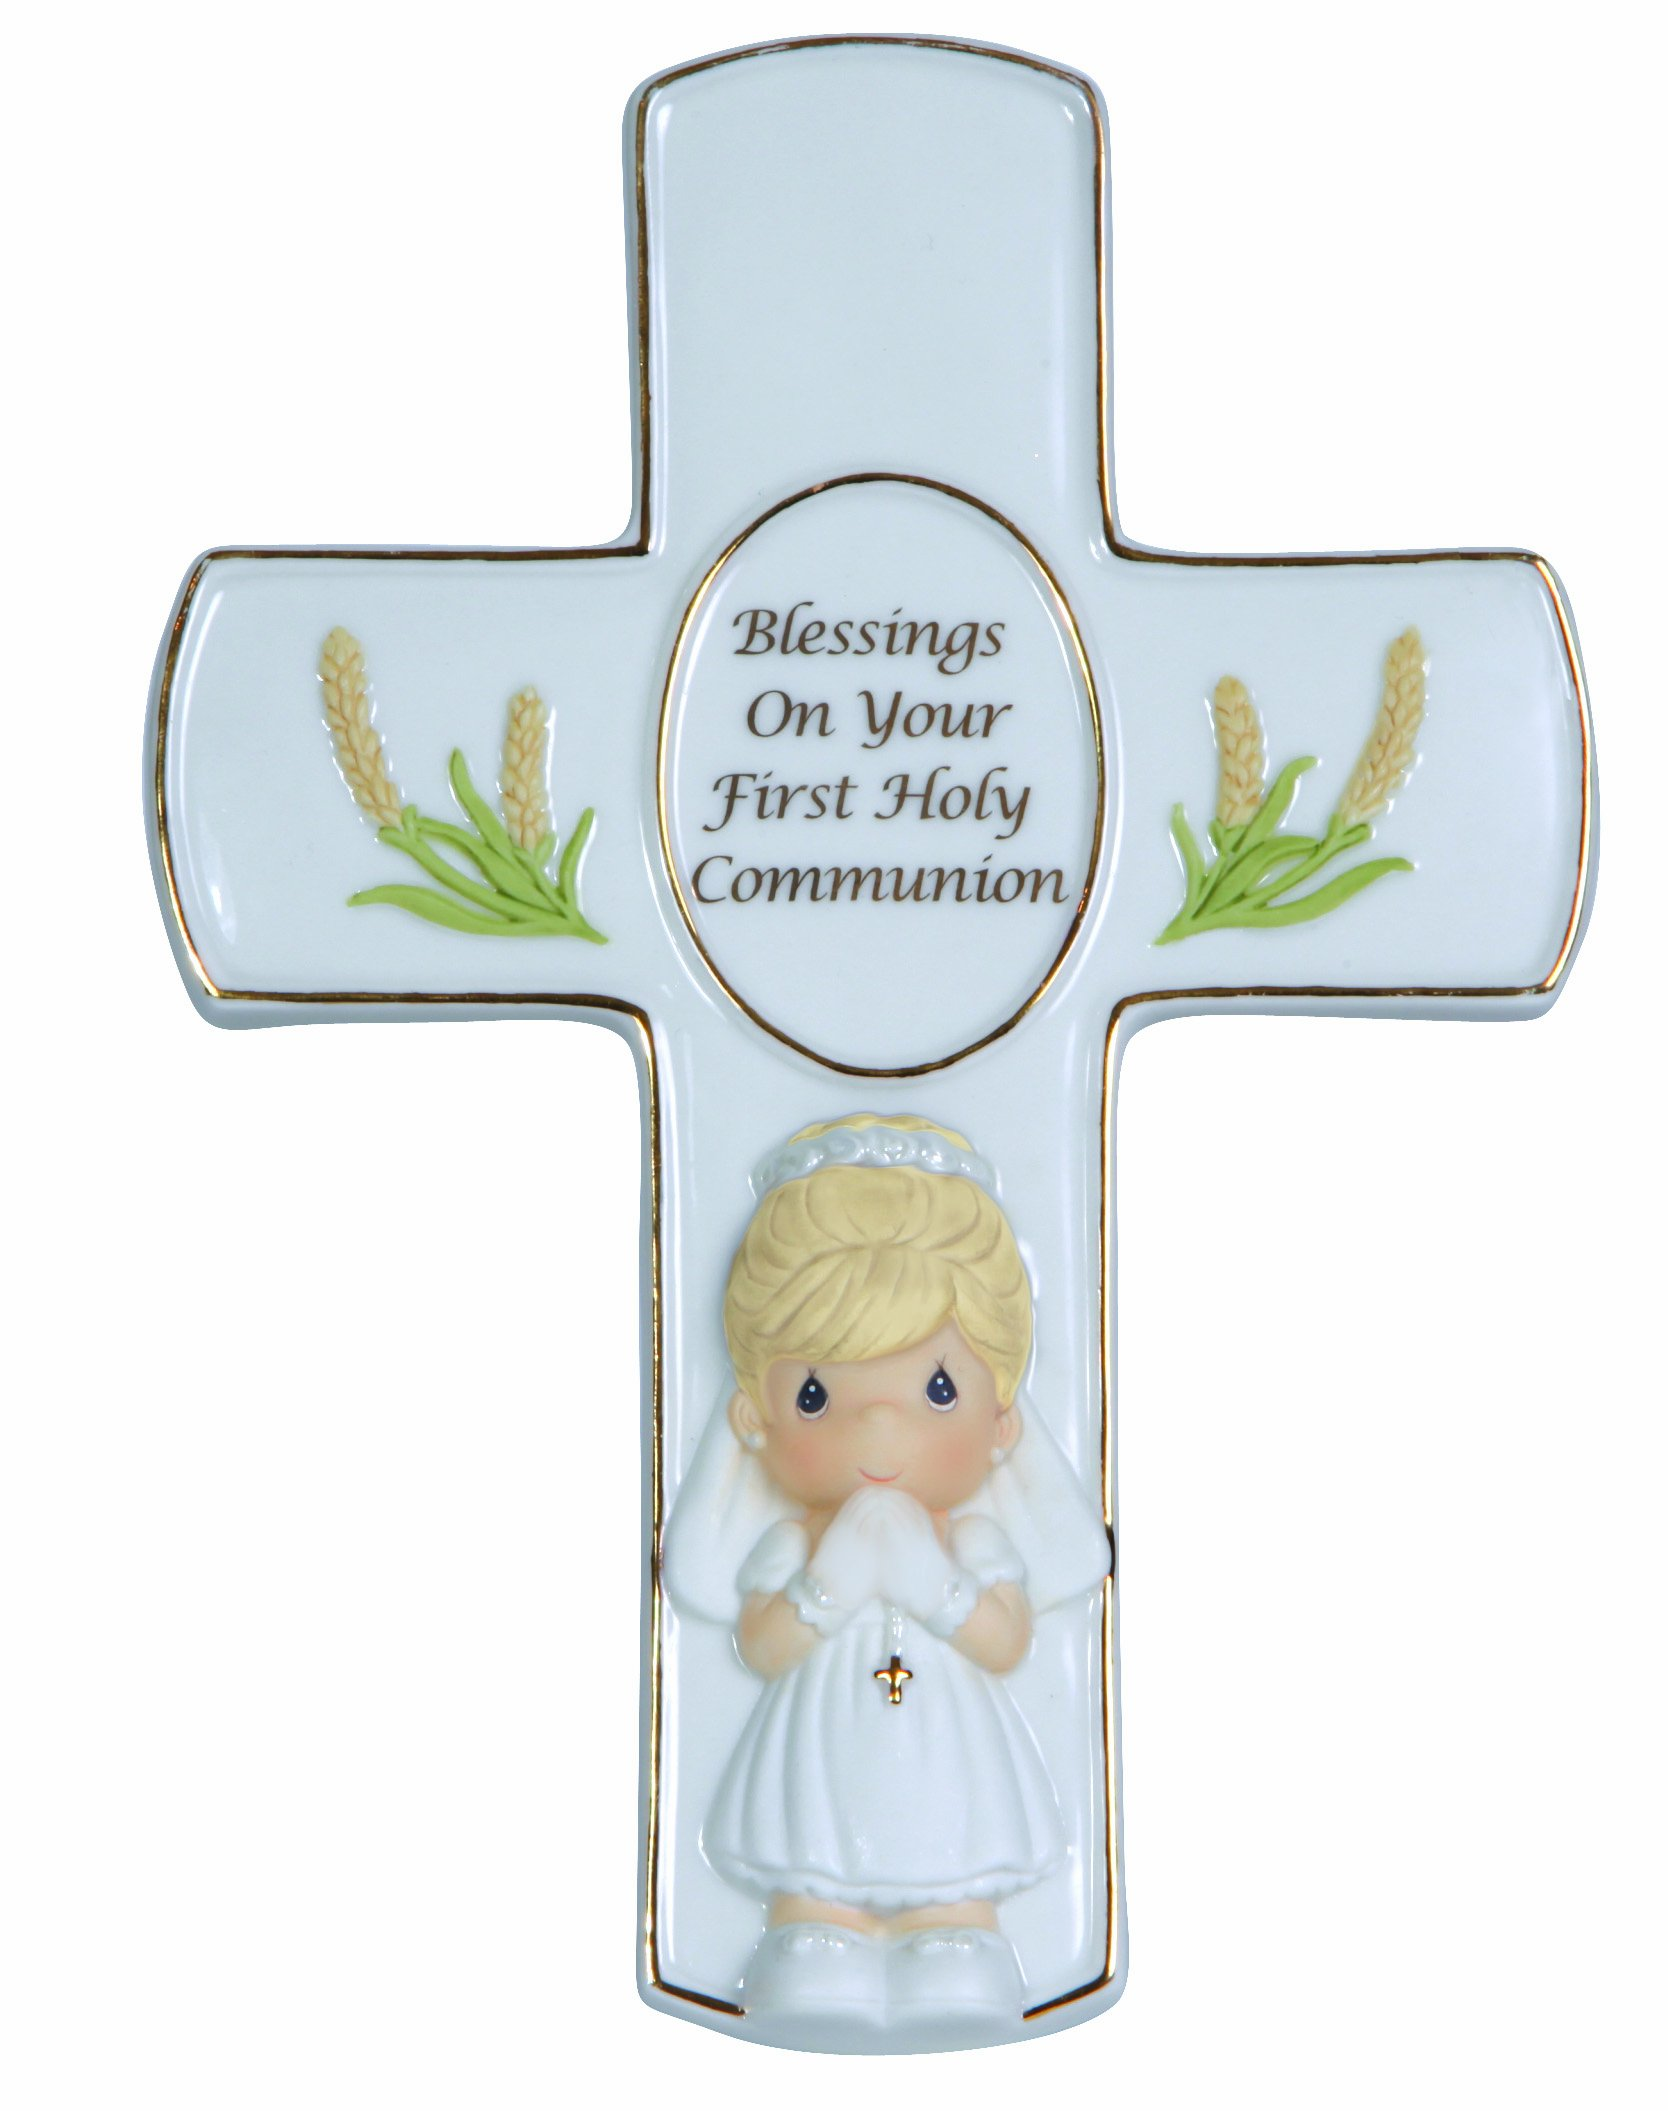 Precious Moments, Blessings On Your First Holy Communion, Bisque Porcelain Cross With Stand, Girl, 123408